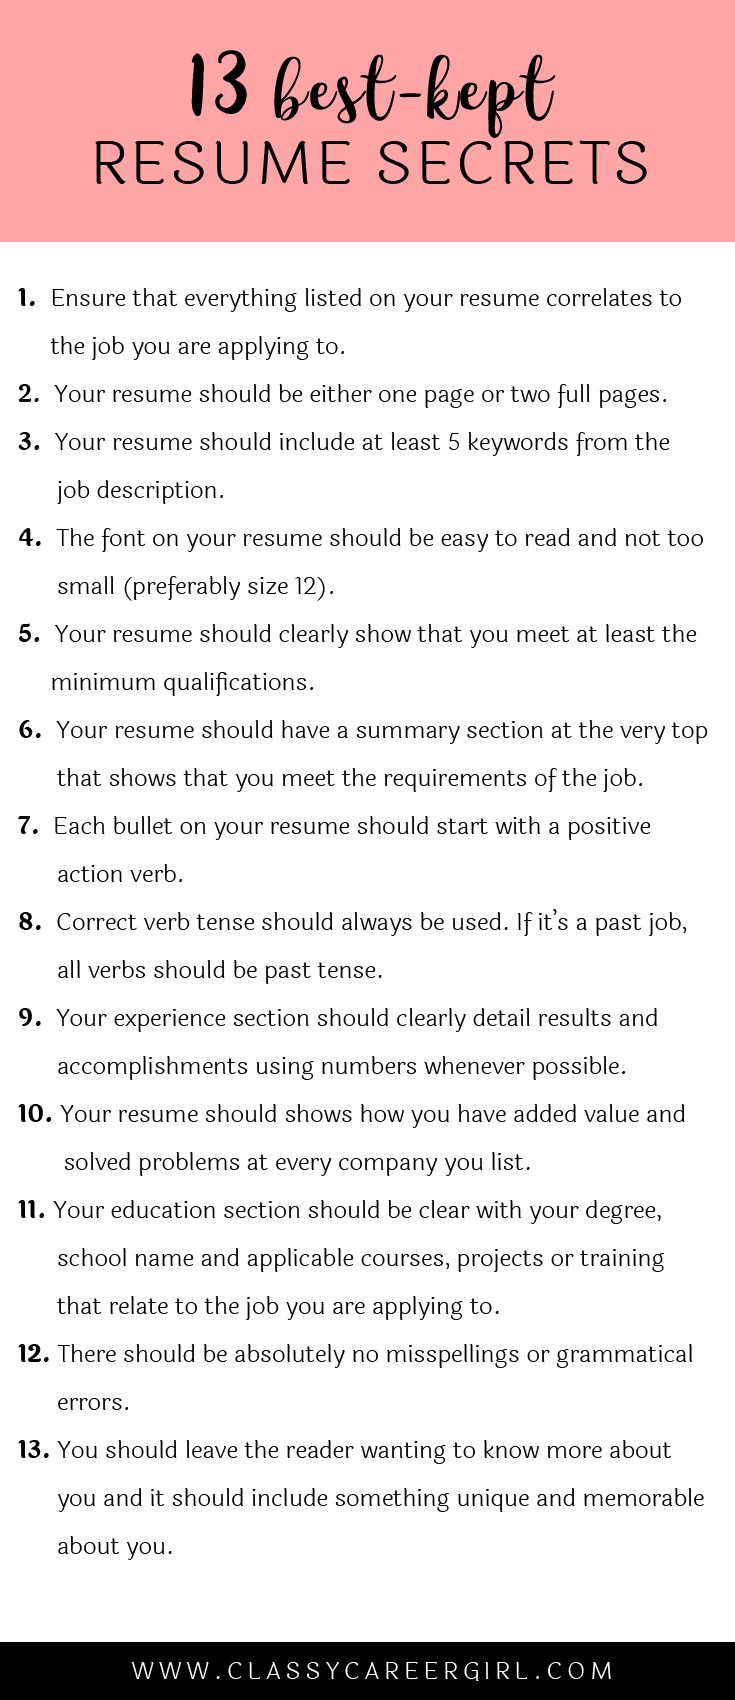 Opposenewapstandardsus  Remarkable  Ideas About Resume On Pinterest  Cv Format Resume  With Handsome Some Hiring Managers Will Toss Your Resume Out If You Dont Know These  With Cool Latest Resume Format Also Objectives Resume In Addition Sales Objective For Resume And Manufacturing Engineer Resume As Well As Senior Project Manager Resume Additionally Power Words For Resumes From Pinterestcom With Opposenewapstandardsus  Handsome  Ideas About Resume On Pinterest  Cv Format Resume  With Cool Some Hiring Managers Will Toss Your Resume Out If You Dont Know These  And Remarkable Latest Resume Format Also Objectives Resume In Addition Sales Objective For Resume From Pinterestcom